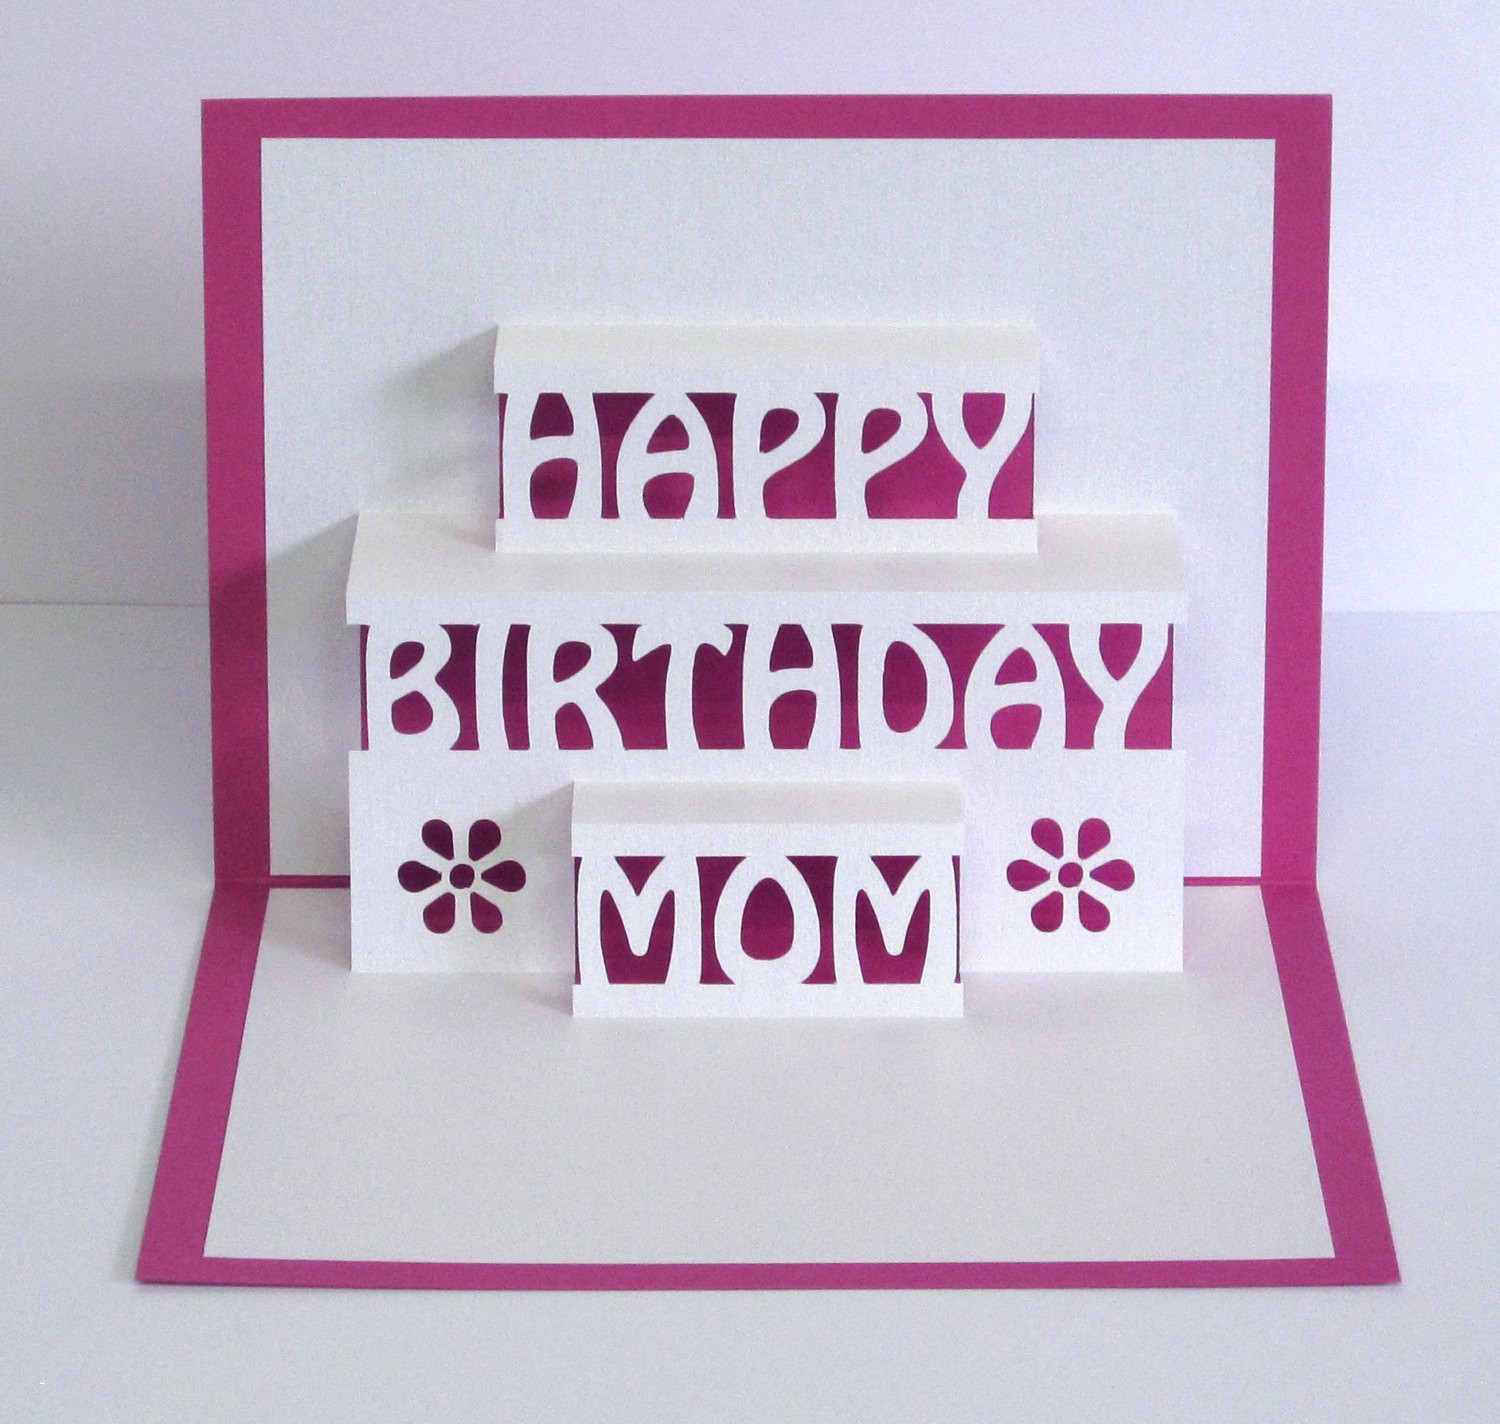 Birthday Card Ideas For Mom Birthday Card From Mom To Daughter Happy Birthday Mom Cards Best